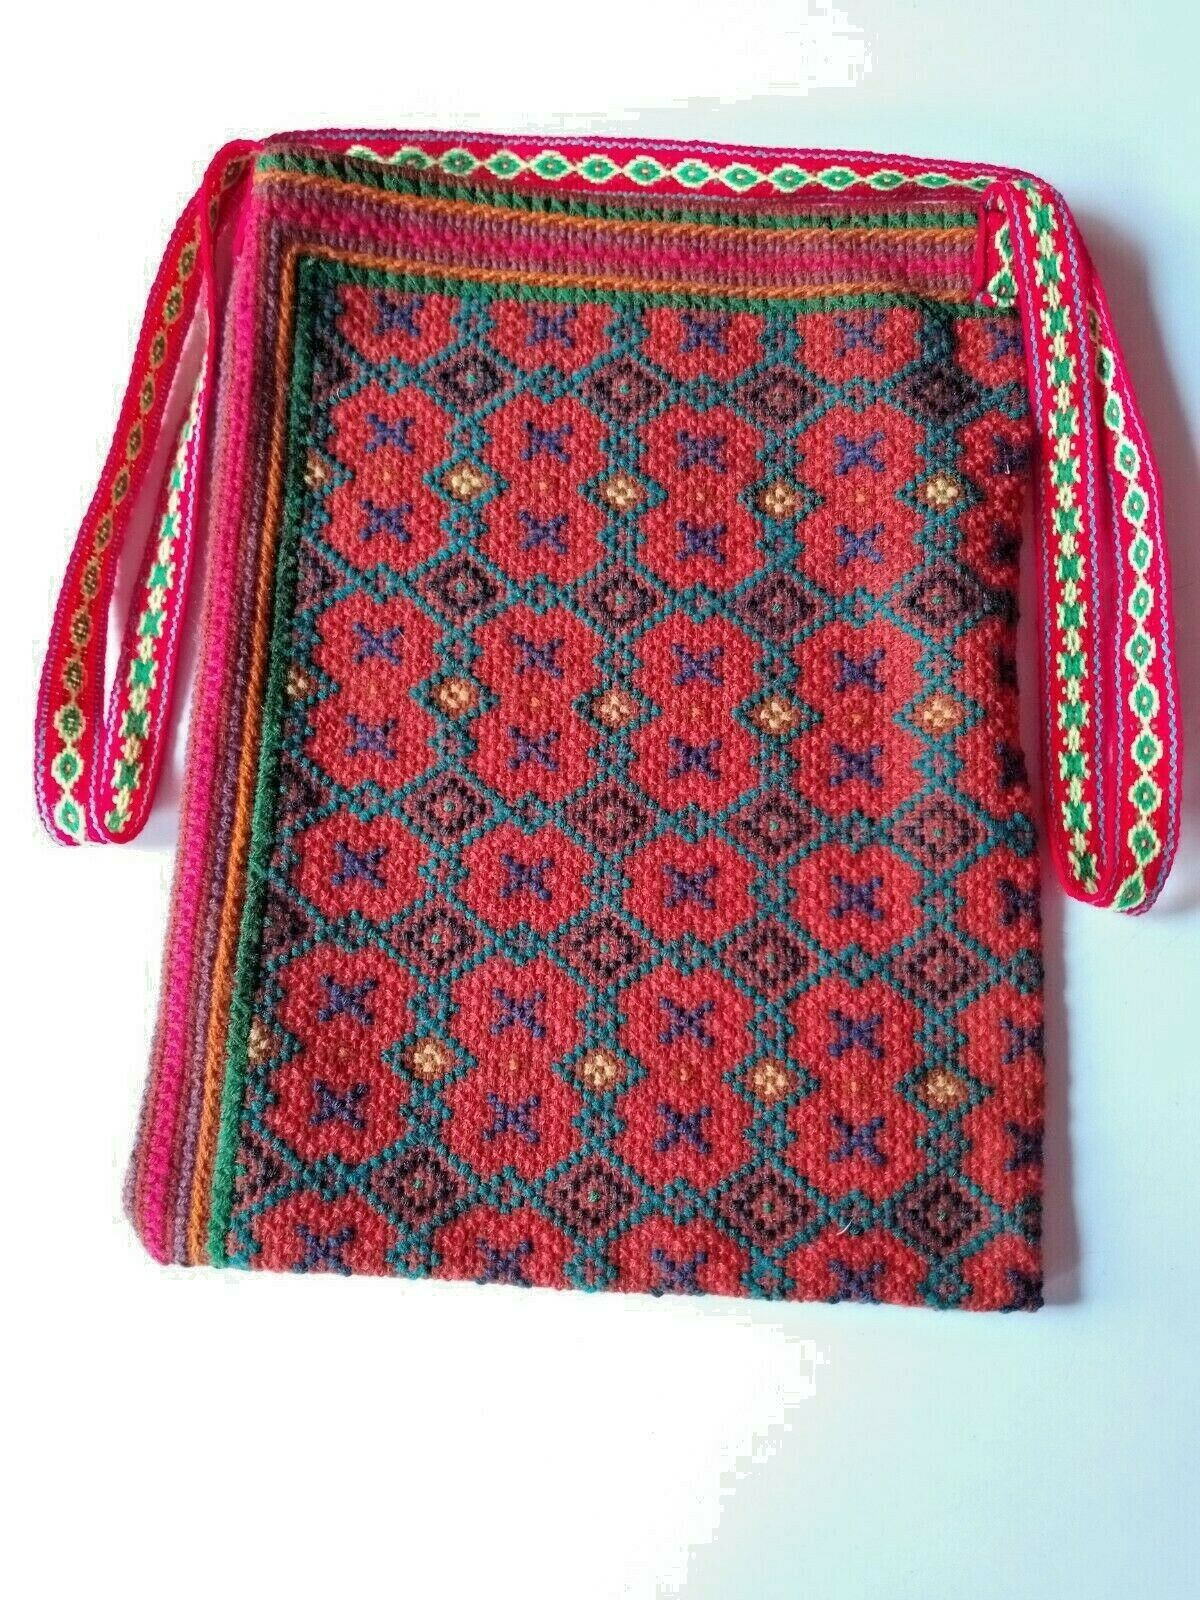 Peruvian hand-embroidered bag with Kené designs.